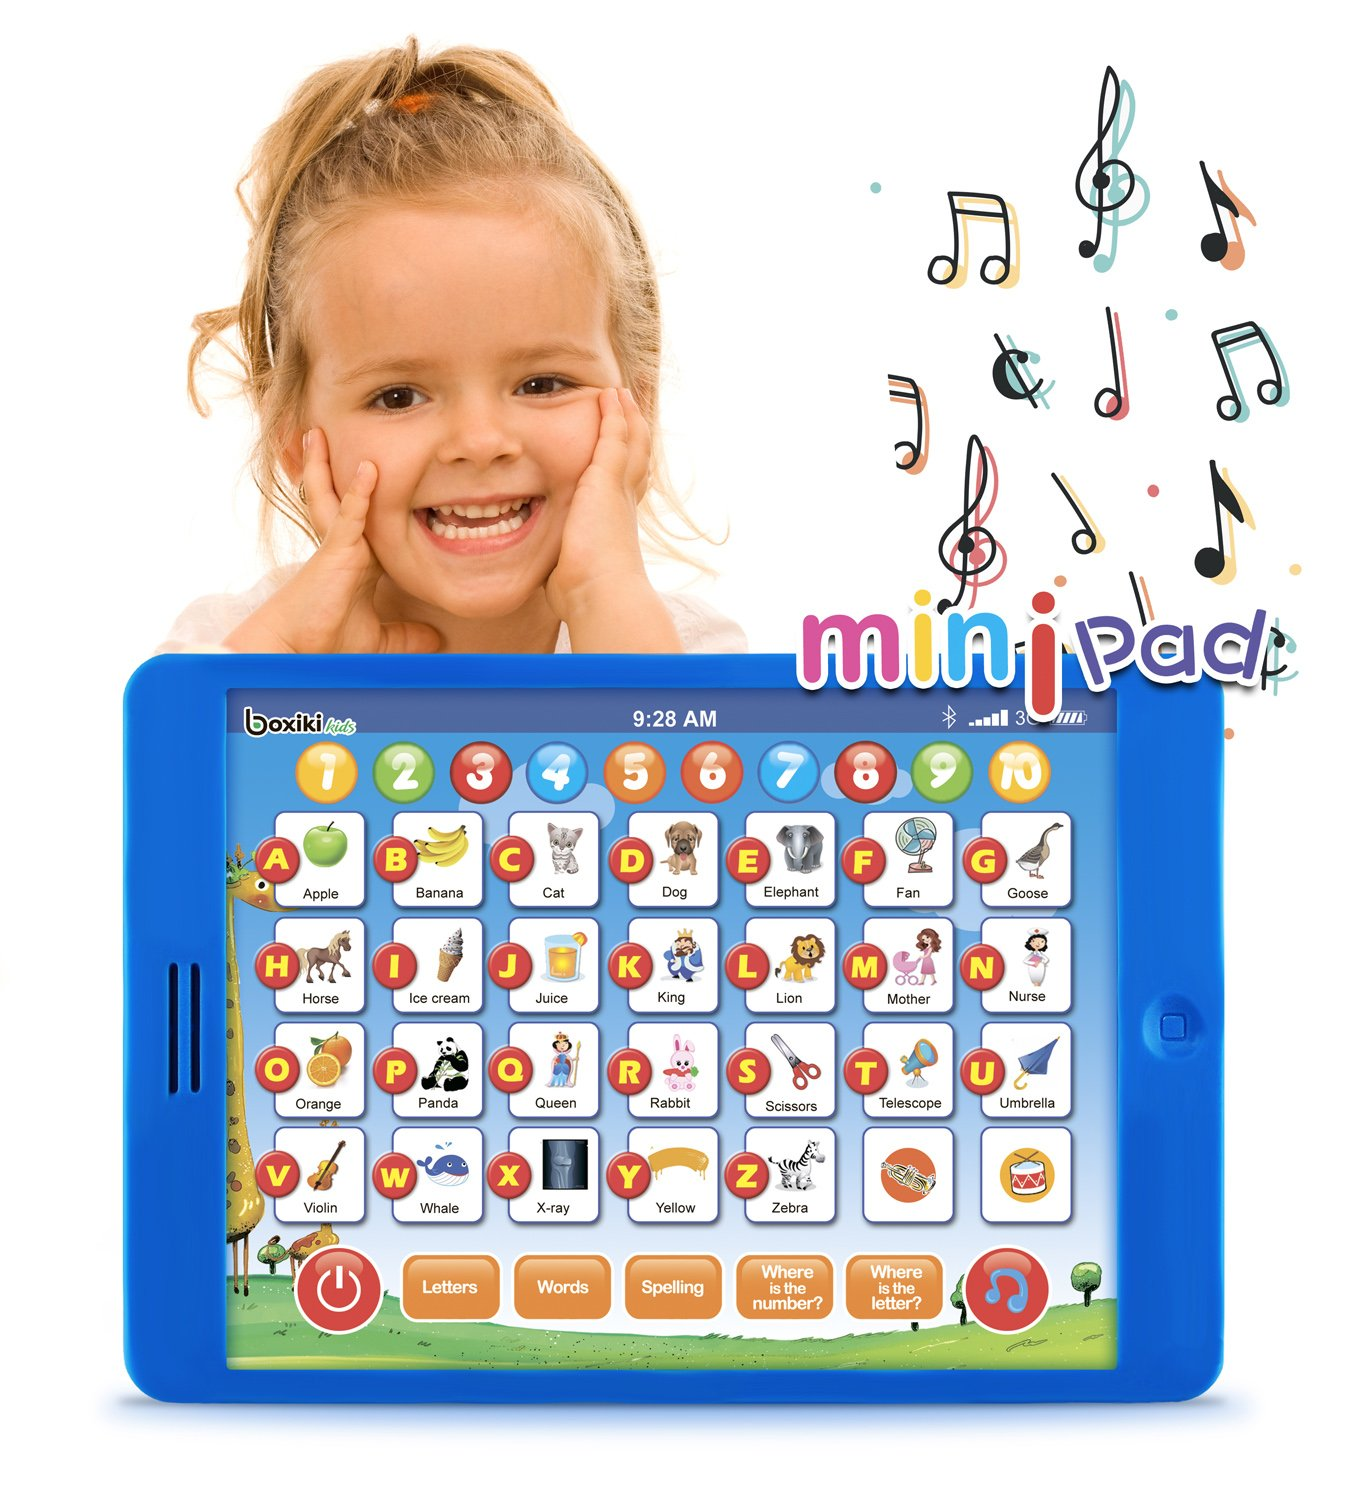 "Boxiki kids Learning Pad Fun Kids Tablet with 6 Toddler Learning Games by Early Child Development Toy for Number Learning, Learning ABCs, Spelling, ""Where Is?"" Game, Melodies. Educational Toy"